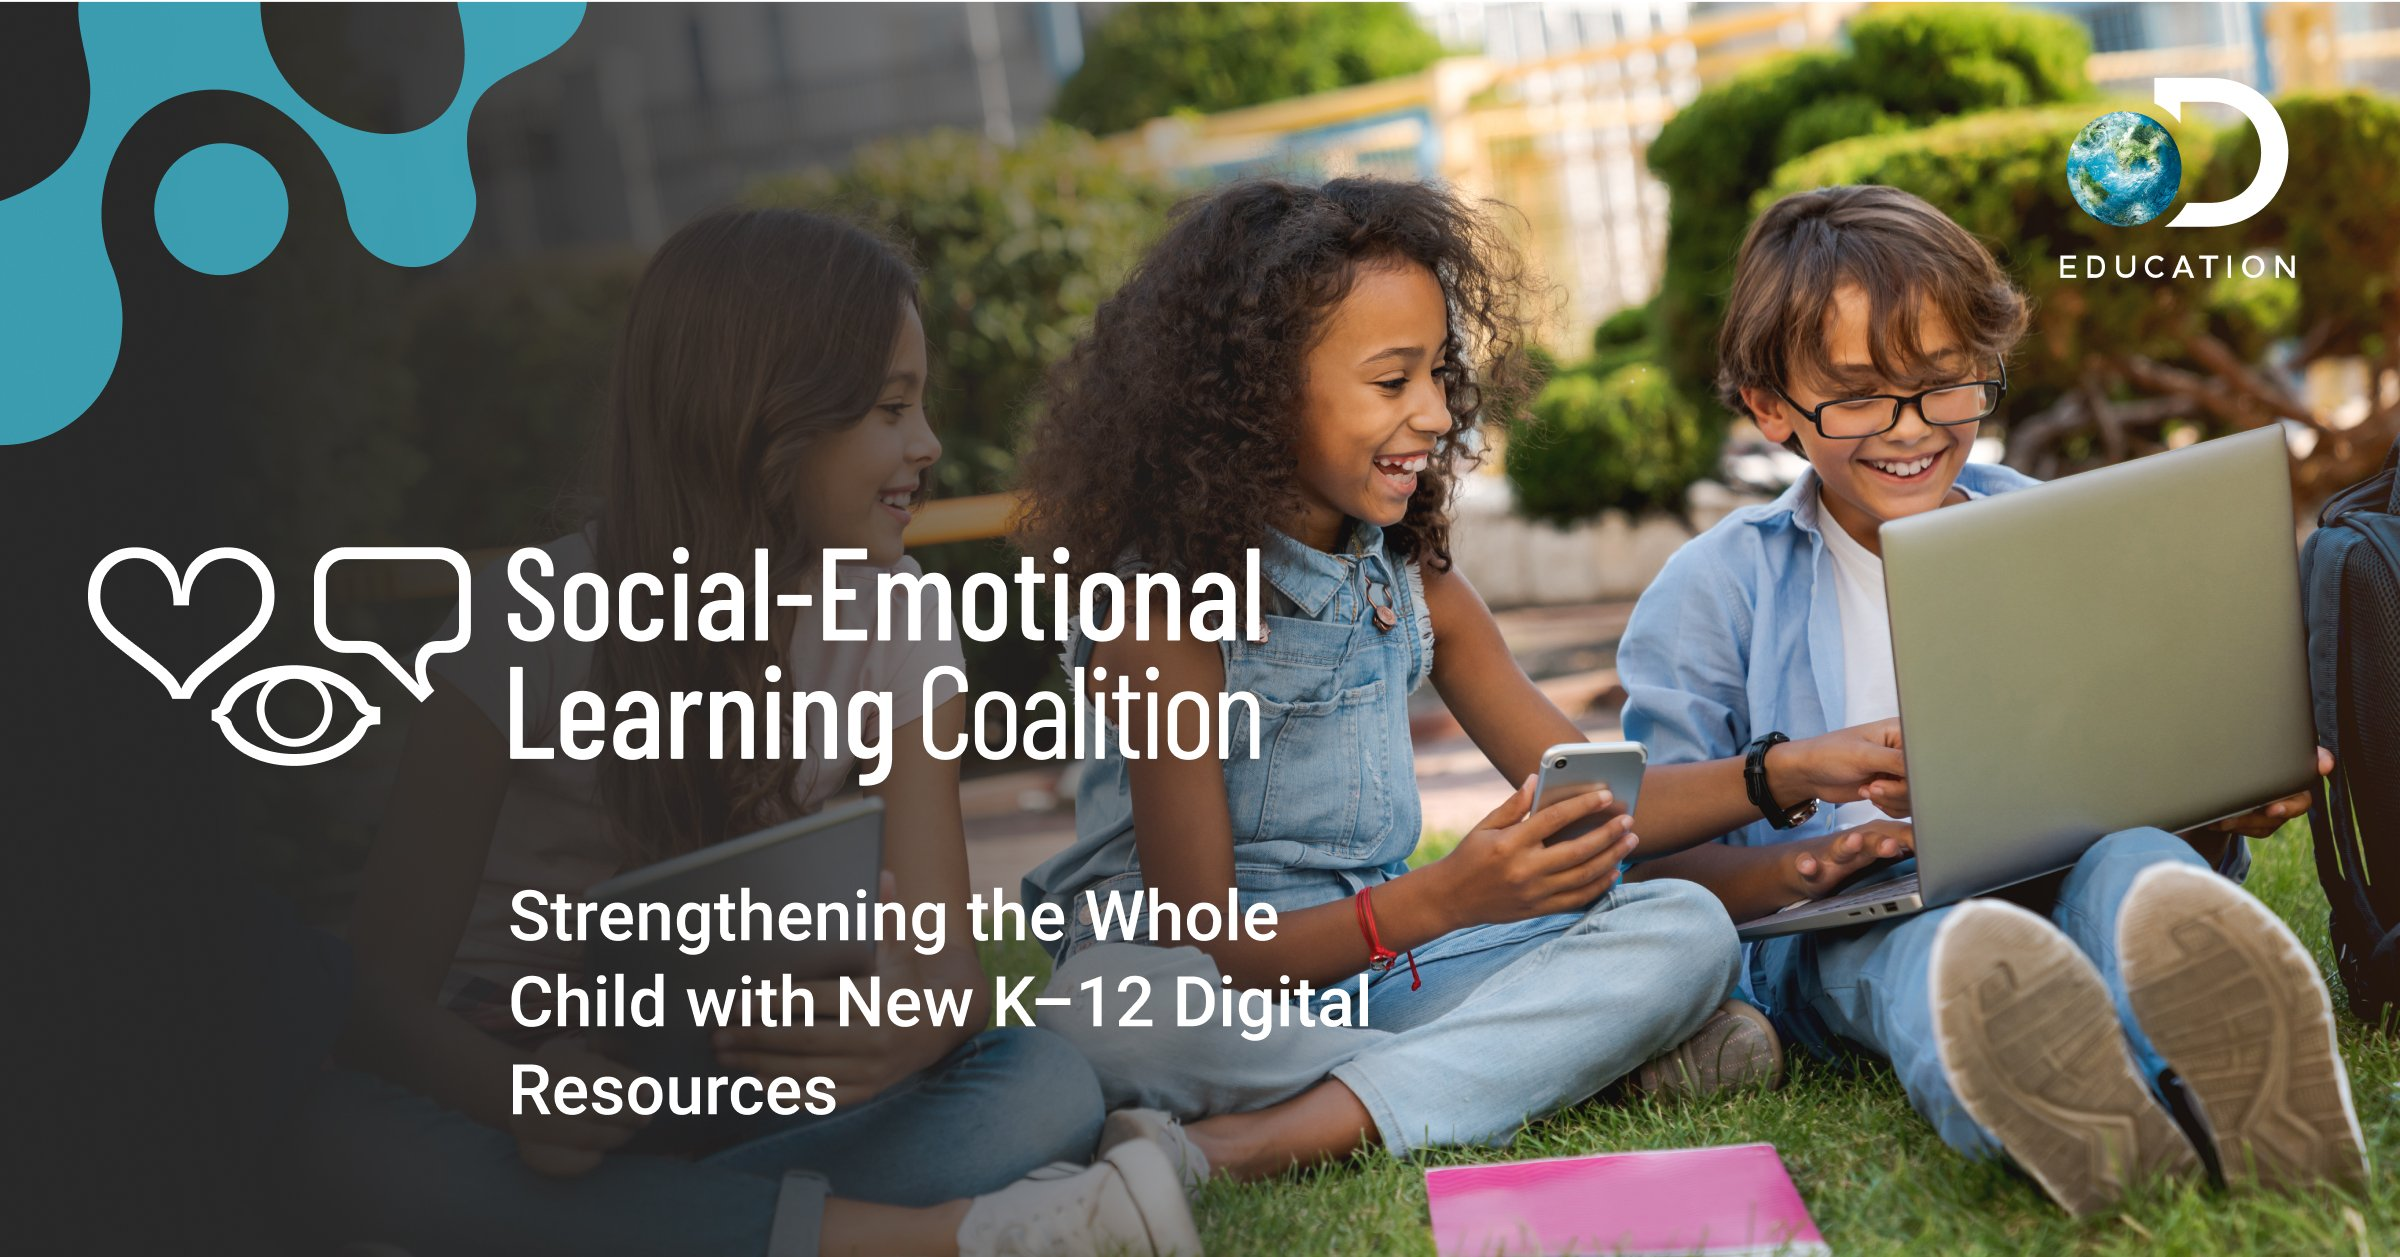 Social-Emotional Learning Coalition Provides Free Resources to Address Educator & Student Needs